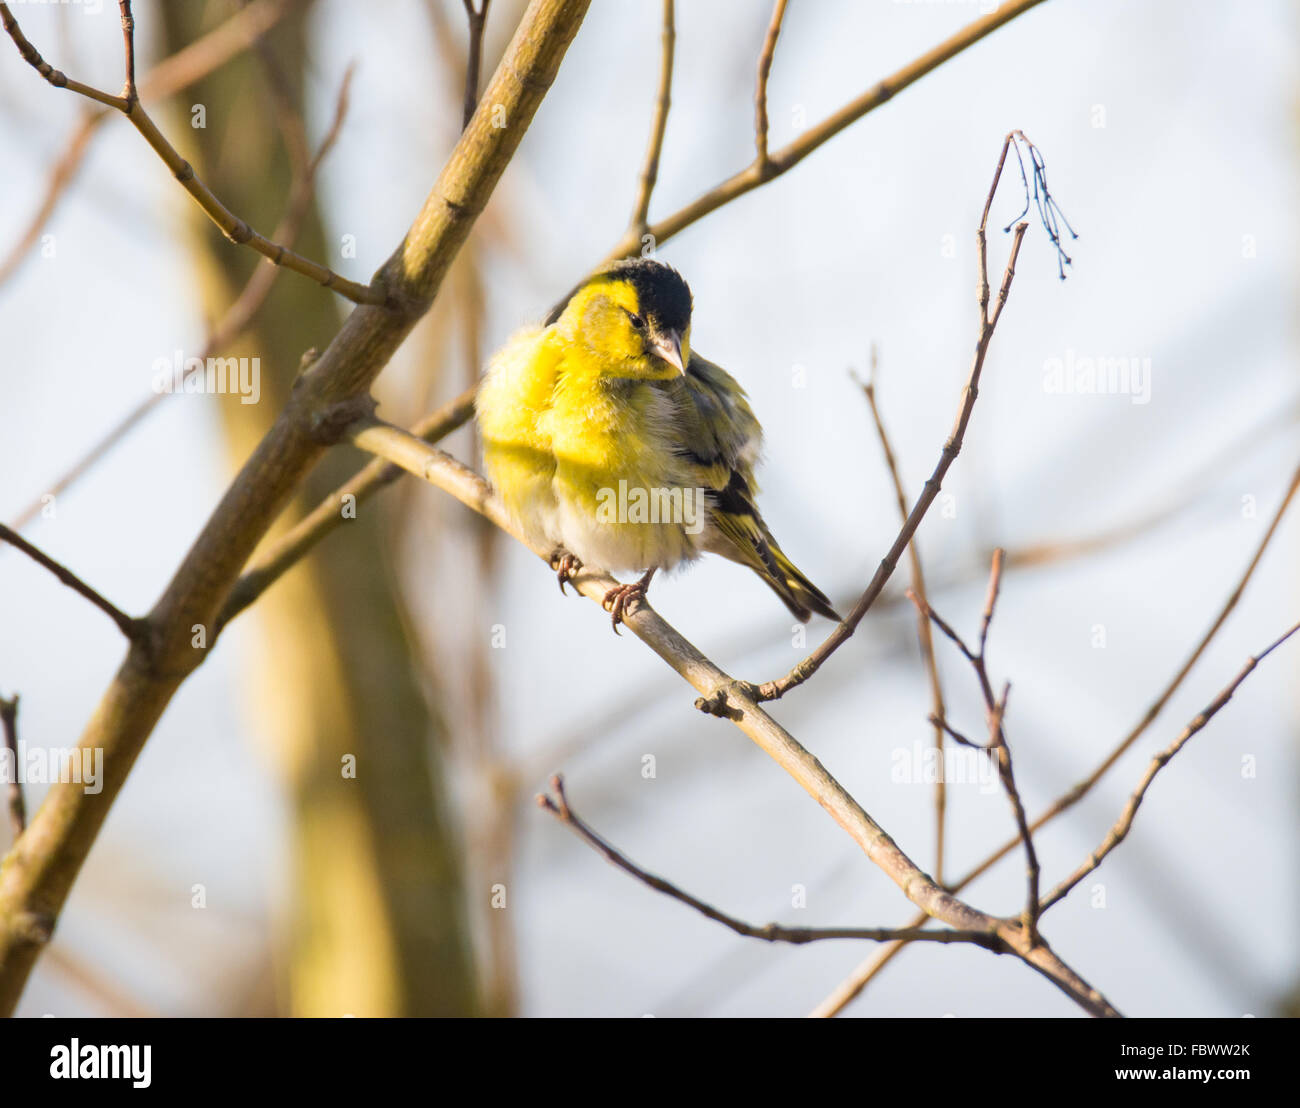 Black-headed Goldfinch (Carduelis spinus) sitting on a branch. Stock Photo